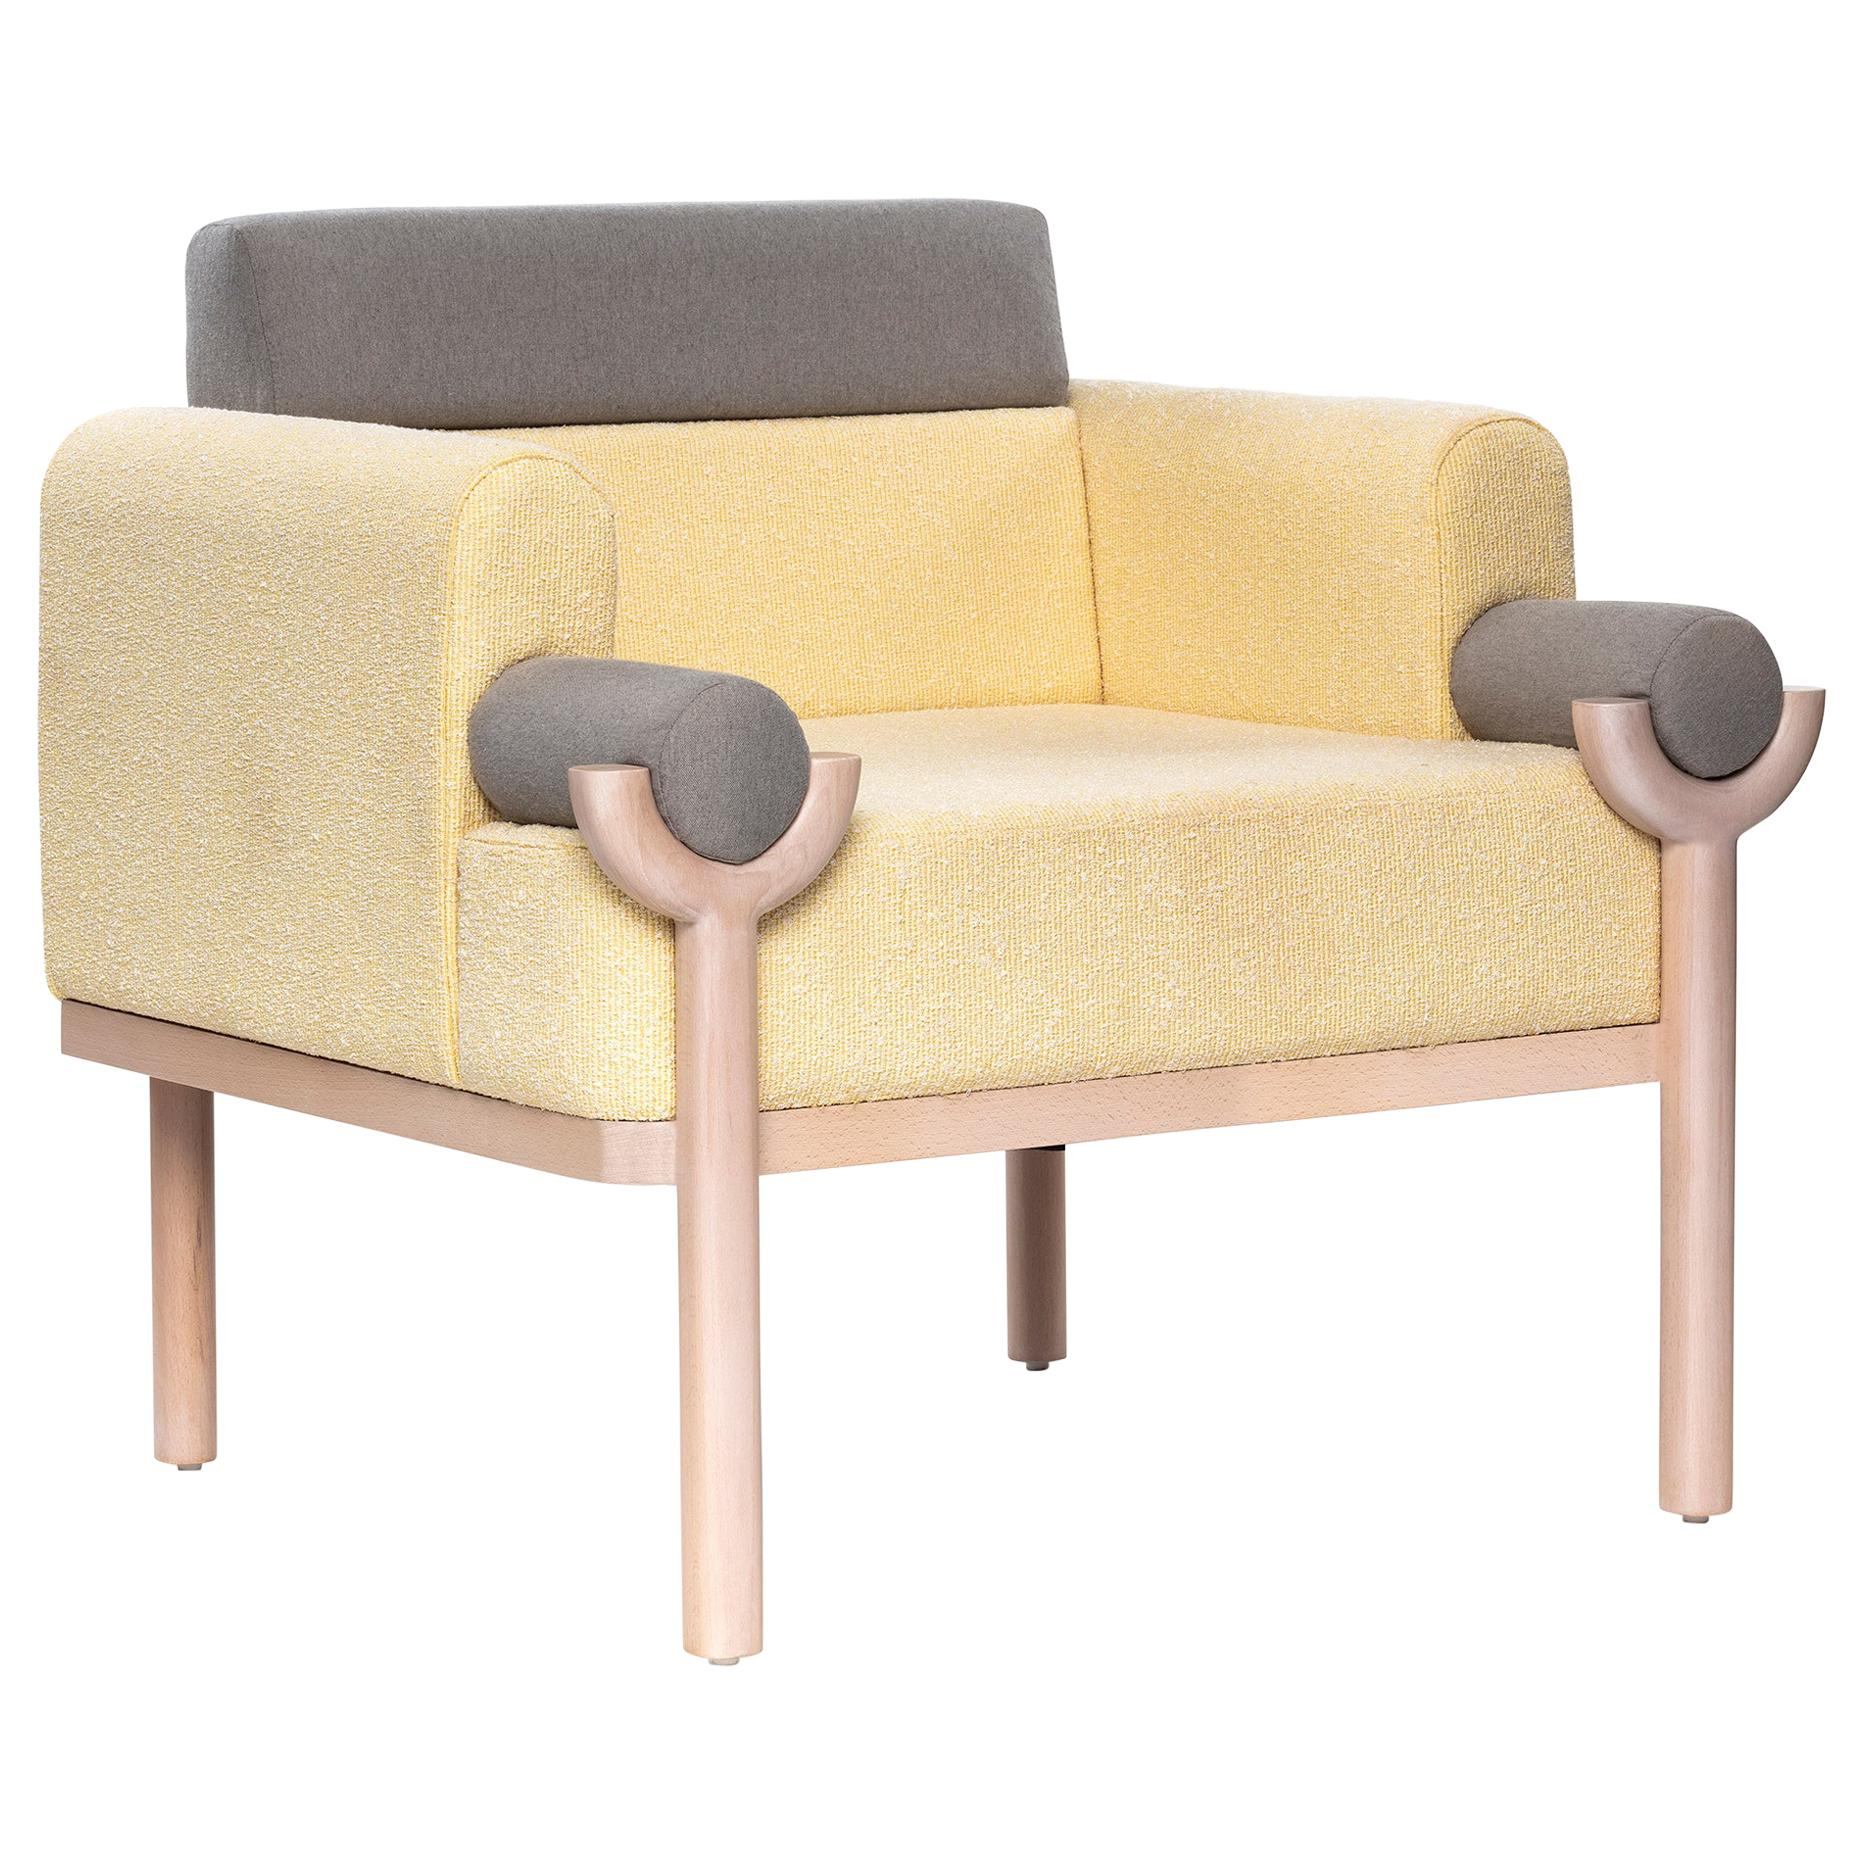 Mid-Century Modern Style Solid Wood Armchair Upholstered in Textile